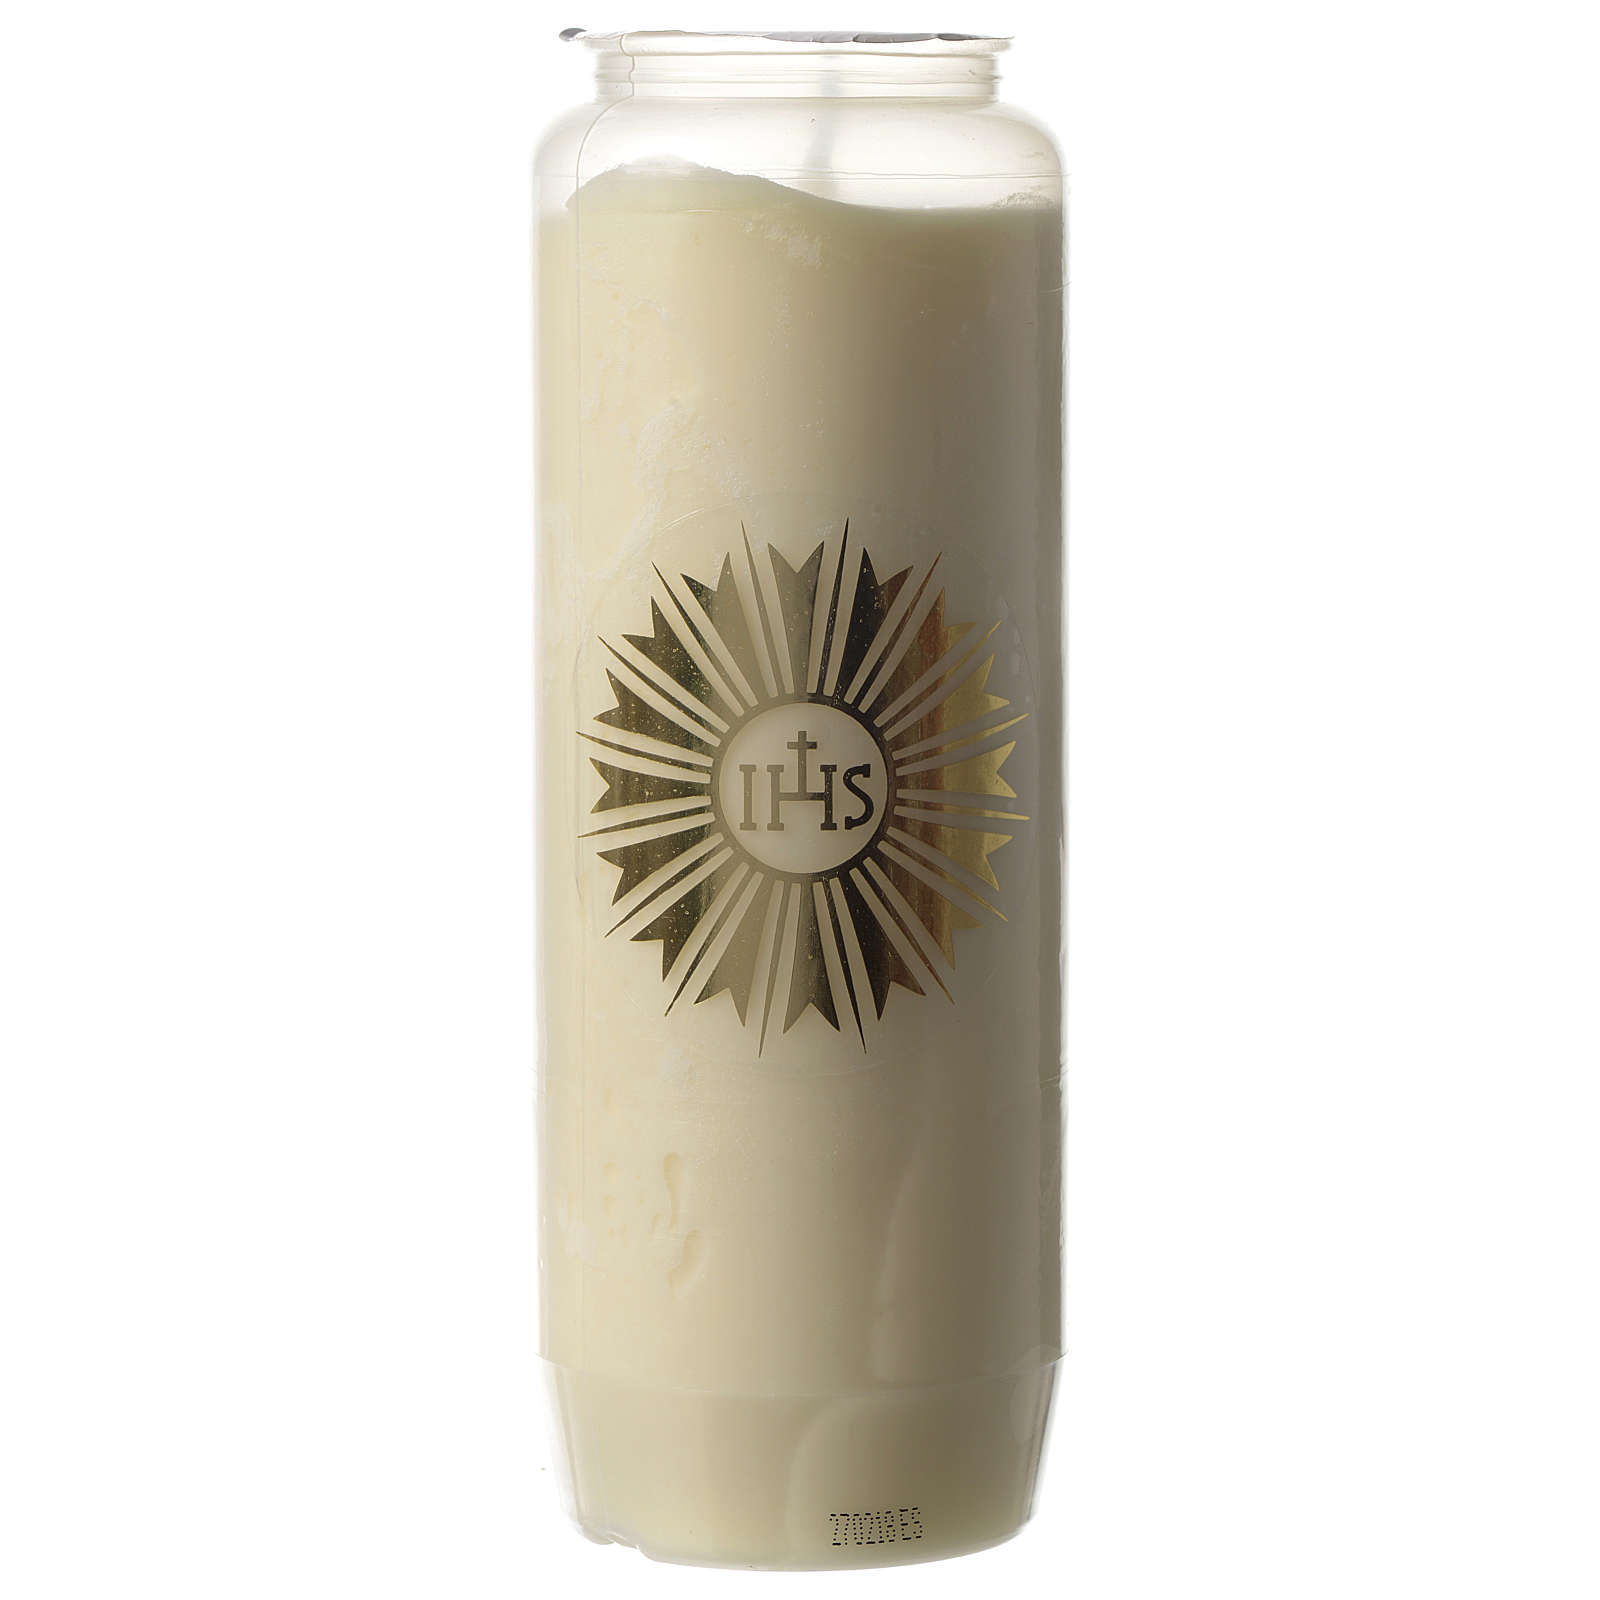 Sanctuary candle in white PVC with IHS symbol - 6 days 3